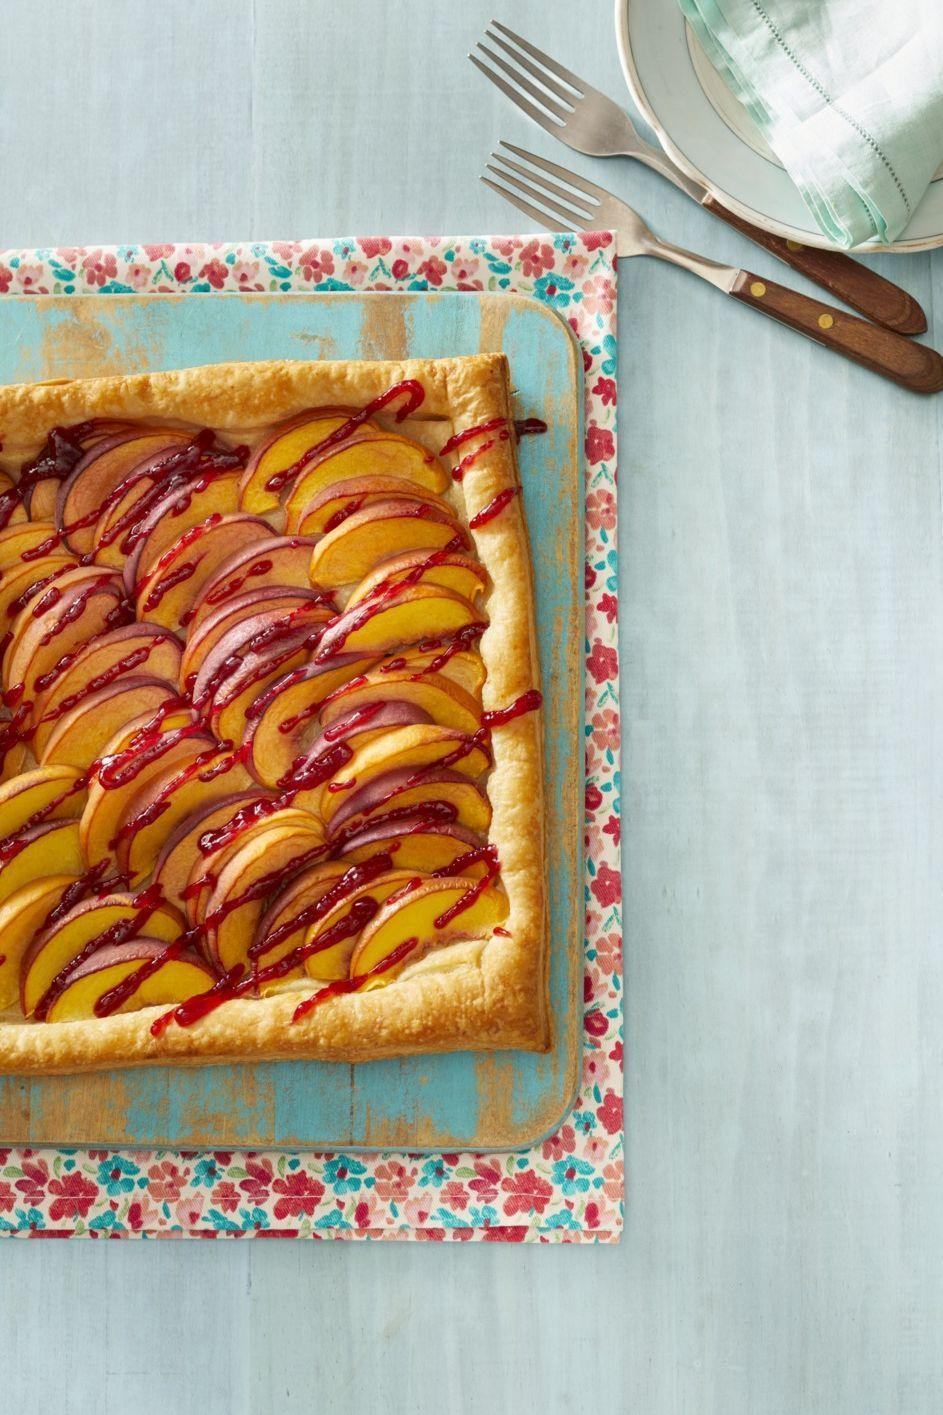 """<p>Instead of your typical pie crust, this sheet-pan tart is made with frozen puff pastry. It couldn't be easier—but your guests don't have to know that! </p><p><a href=""""https://www.thepioneerwoman.com/food-cooking/recipes/a32096774/peach-melba-tart-recipe/"""" rel=""""nofollow noopener"""" target=""""_blank"""" data-ylk=""""slk:Get Ree's recipe."""" class=""""link rapid-noclick-resp""""><strong>Get Ree's recipe. </strong></a></p><p><a class=""""link rapid-noclick-resp"""" href=""""https://go.redirectingat.com?id=74968X1596630&url=https%3A%2F%2Fwww.walmart.com%2Fsearch%2F%3Fquery%3Dbaking%2Bsheet&sref=https%3A%2F%2Fwww.thepioneerwoman.com%2Ffood-cooking%2Fmeals-menus%2Fg36558208%2Fsummer-pie-recipes%2F"""" rel=""""nofollow noopener"""" target=""""_blank"""" data-ylk=""""slk:SHOP BAKING SHEETS"""">SHOP BAKING SHEETS</a></p>"""